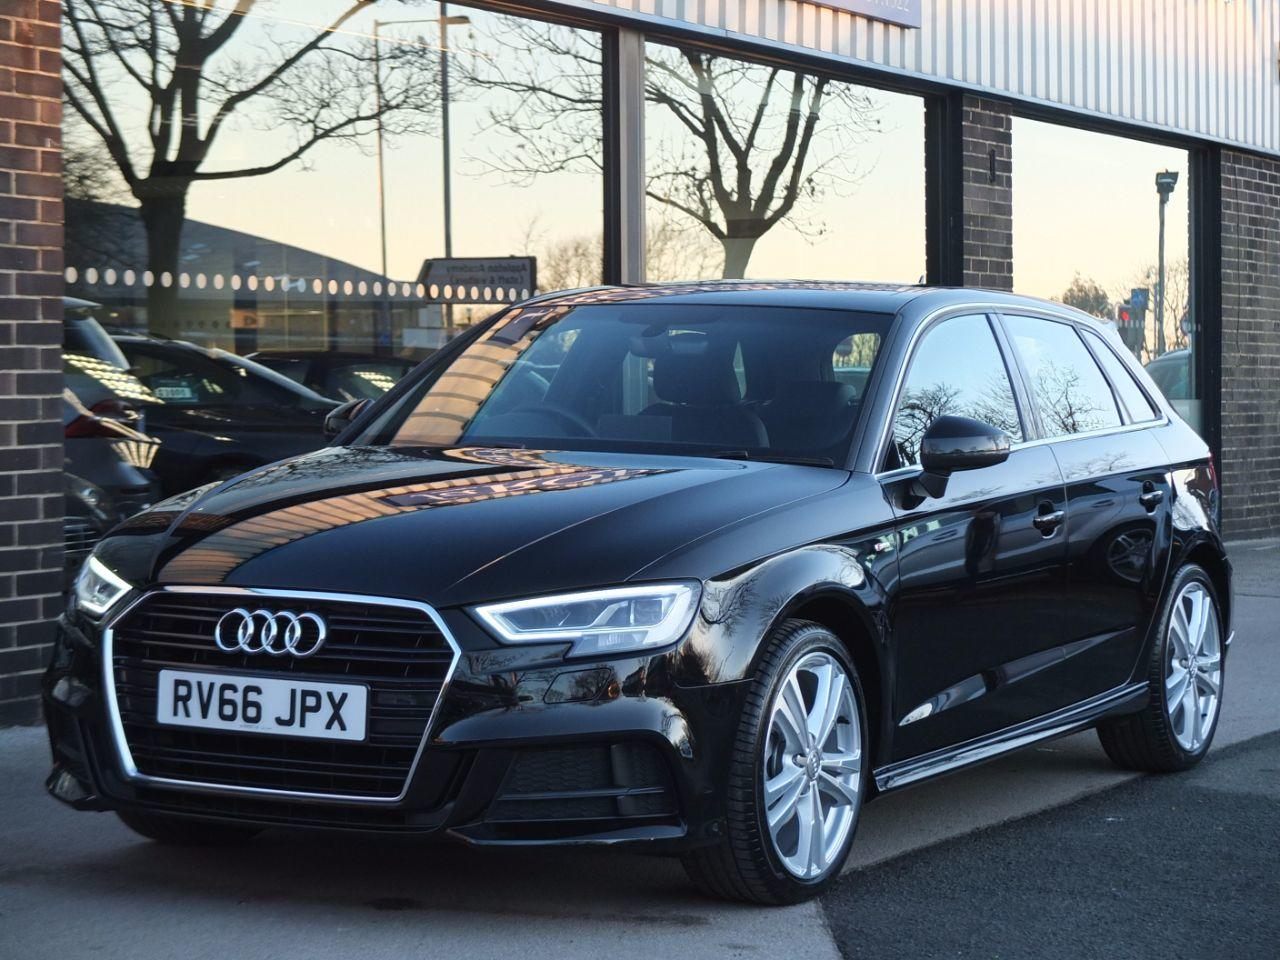 Audi A3 Sportback 1.4 TFSI S Line S tronic 150ps Cylinder on Demand Hatchback Petrol Mythos Black MetallicAudi A3 Sportback 1.4 TFSI S Line S tronic 150ps Cylinder on Demand Hatchback Petrol Mythos Black Metallic at fa Roper Ltd Bradford